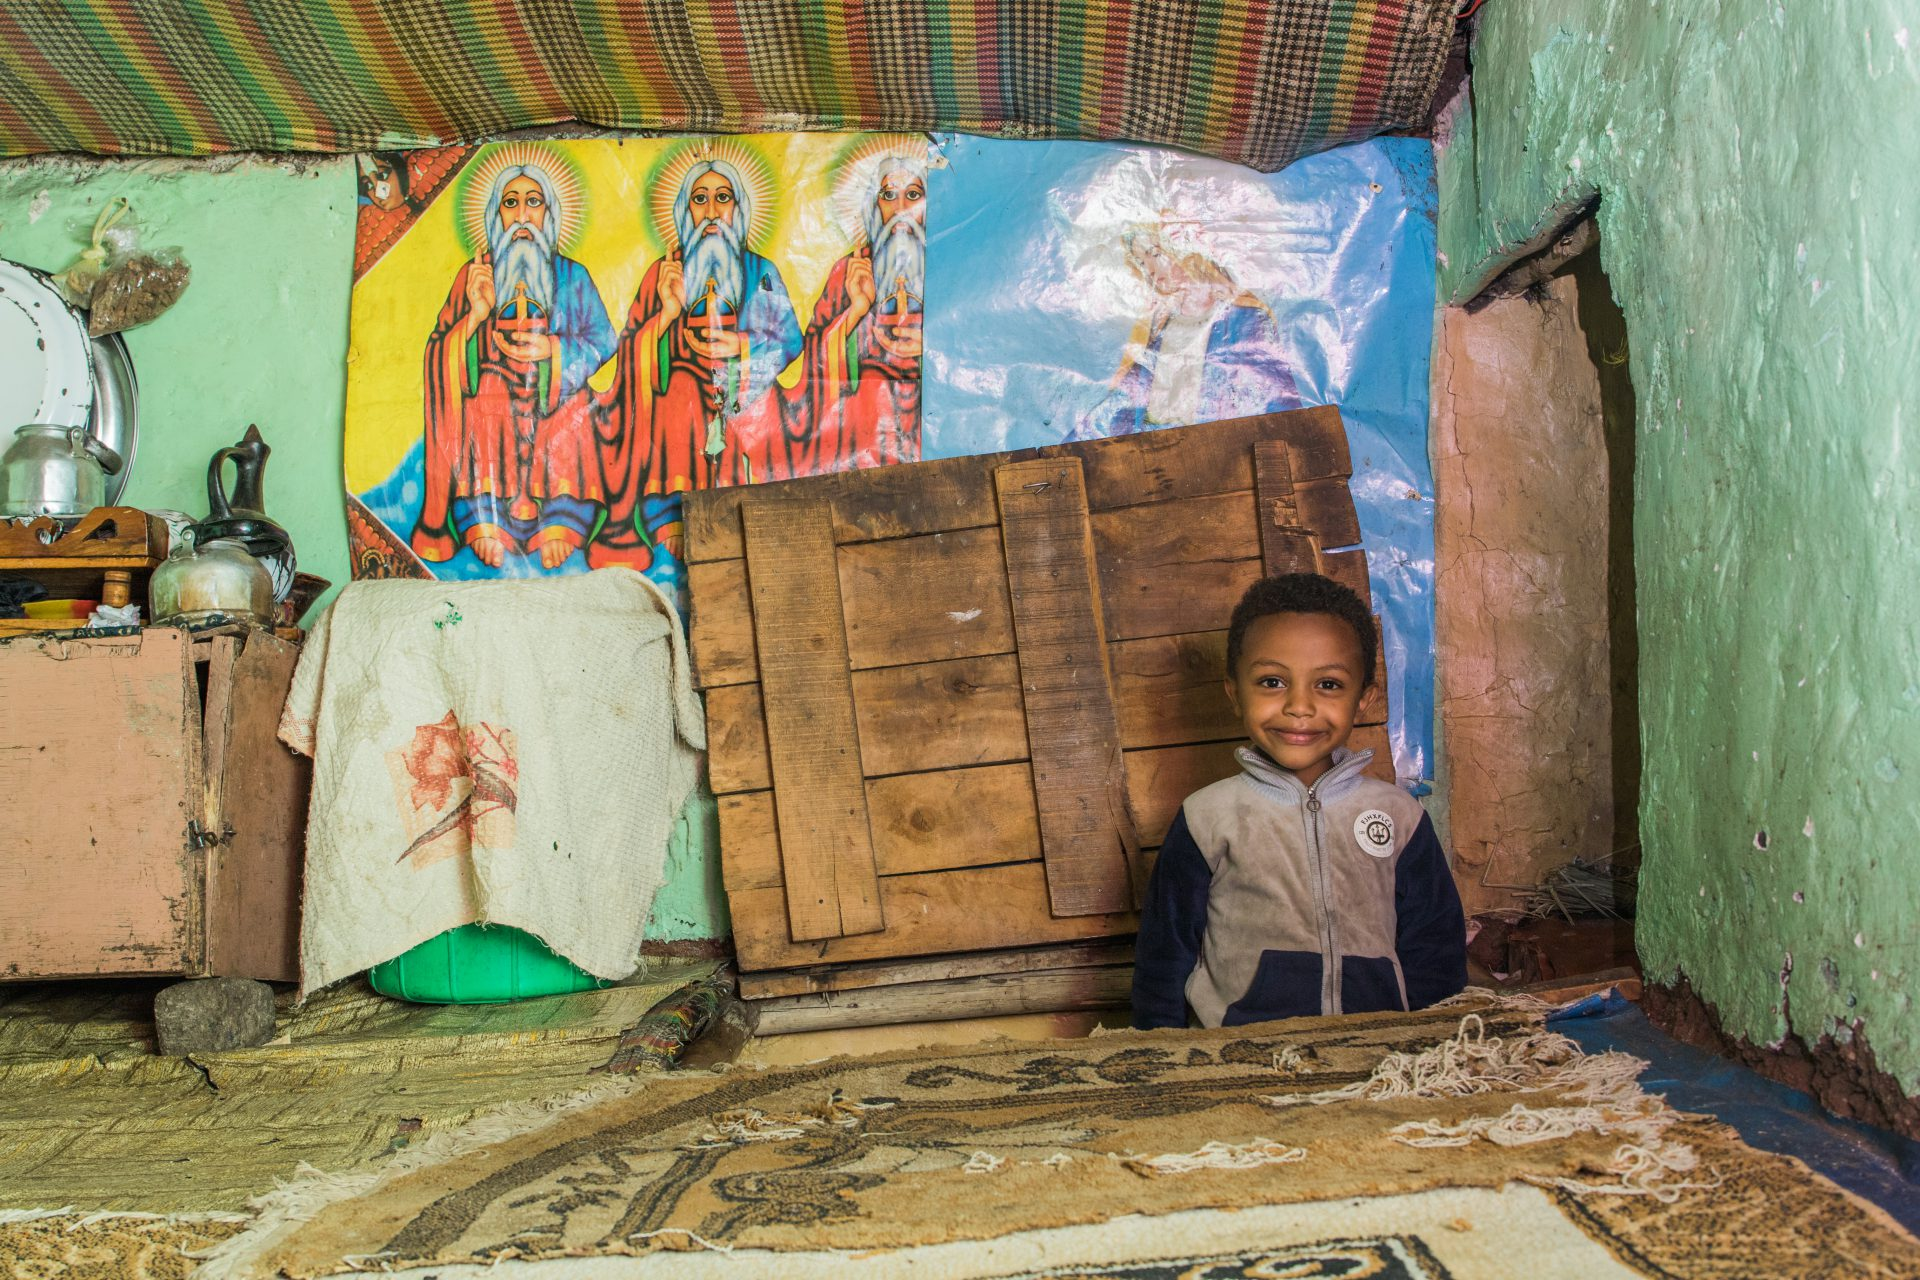 A child peeking into a roof bedroom, Addis Ababa, Ethiopia.